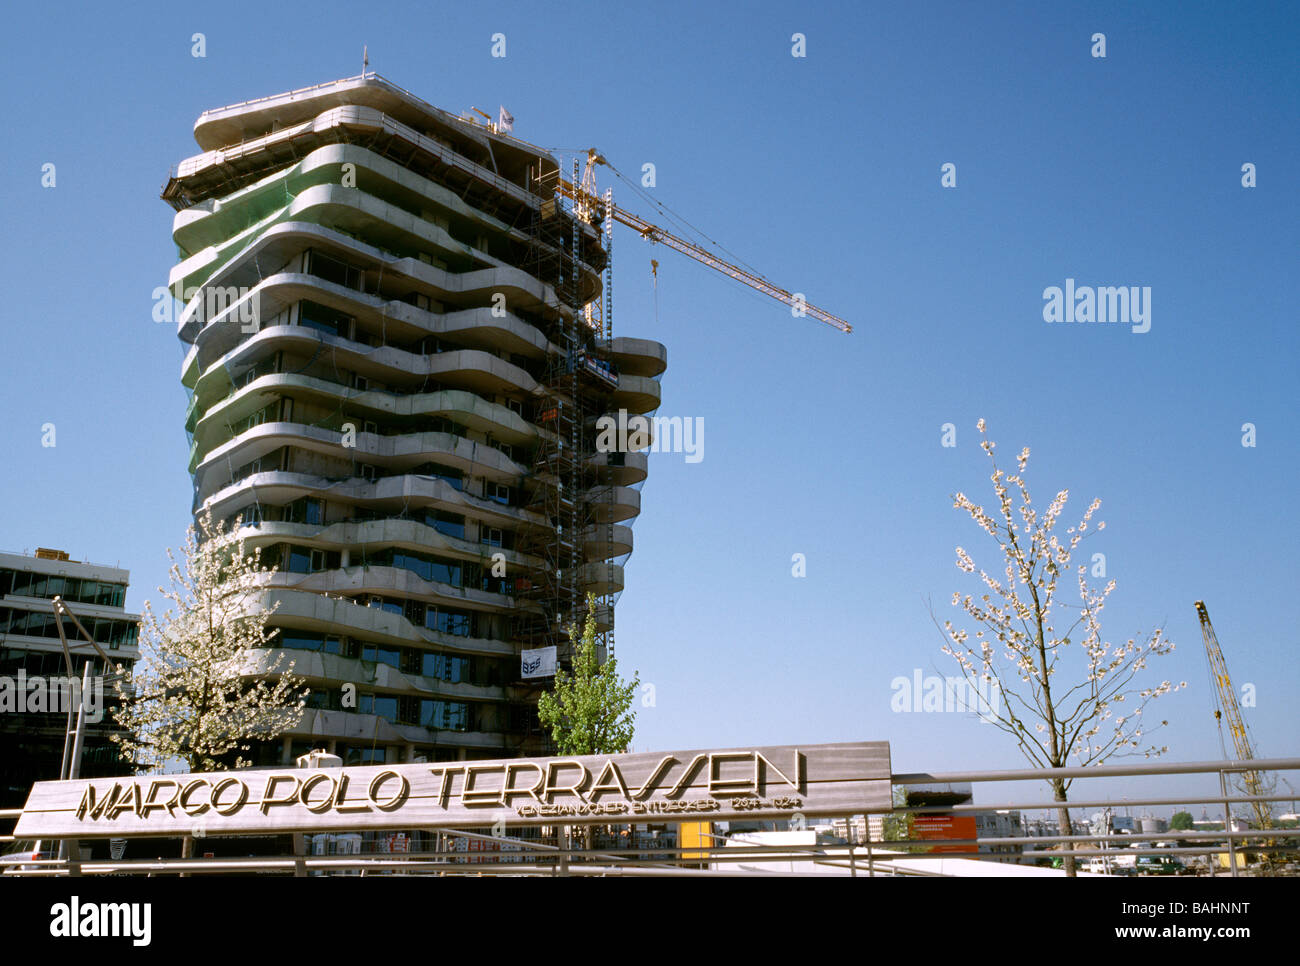 April 21, 2009 - Luxury apartments are being created with the Marco Polo Tower at Strandkai in Hamburg's Hafencity. - Stock Image